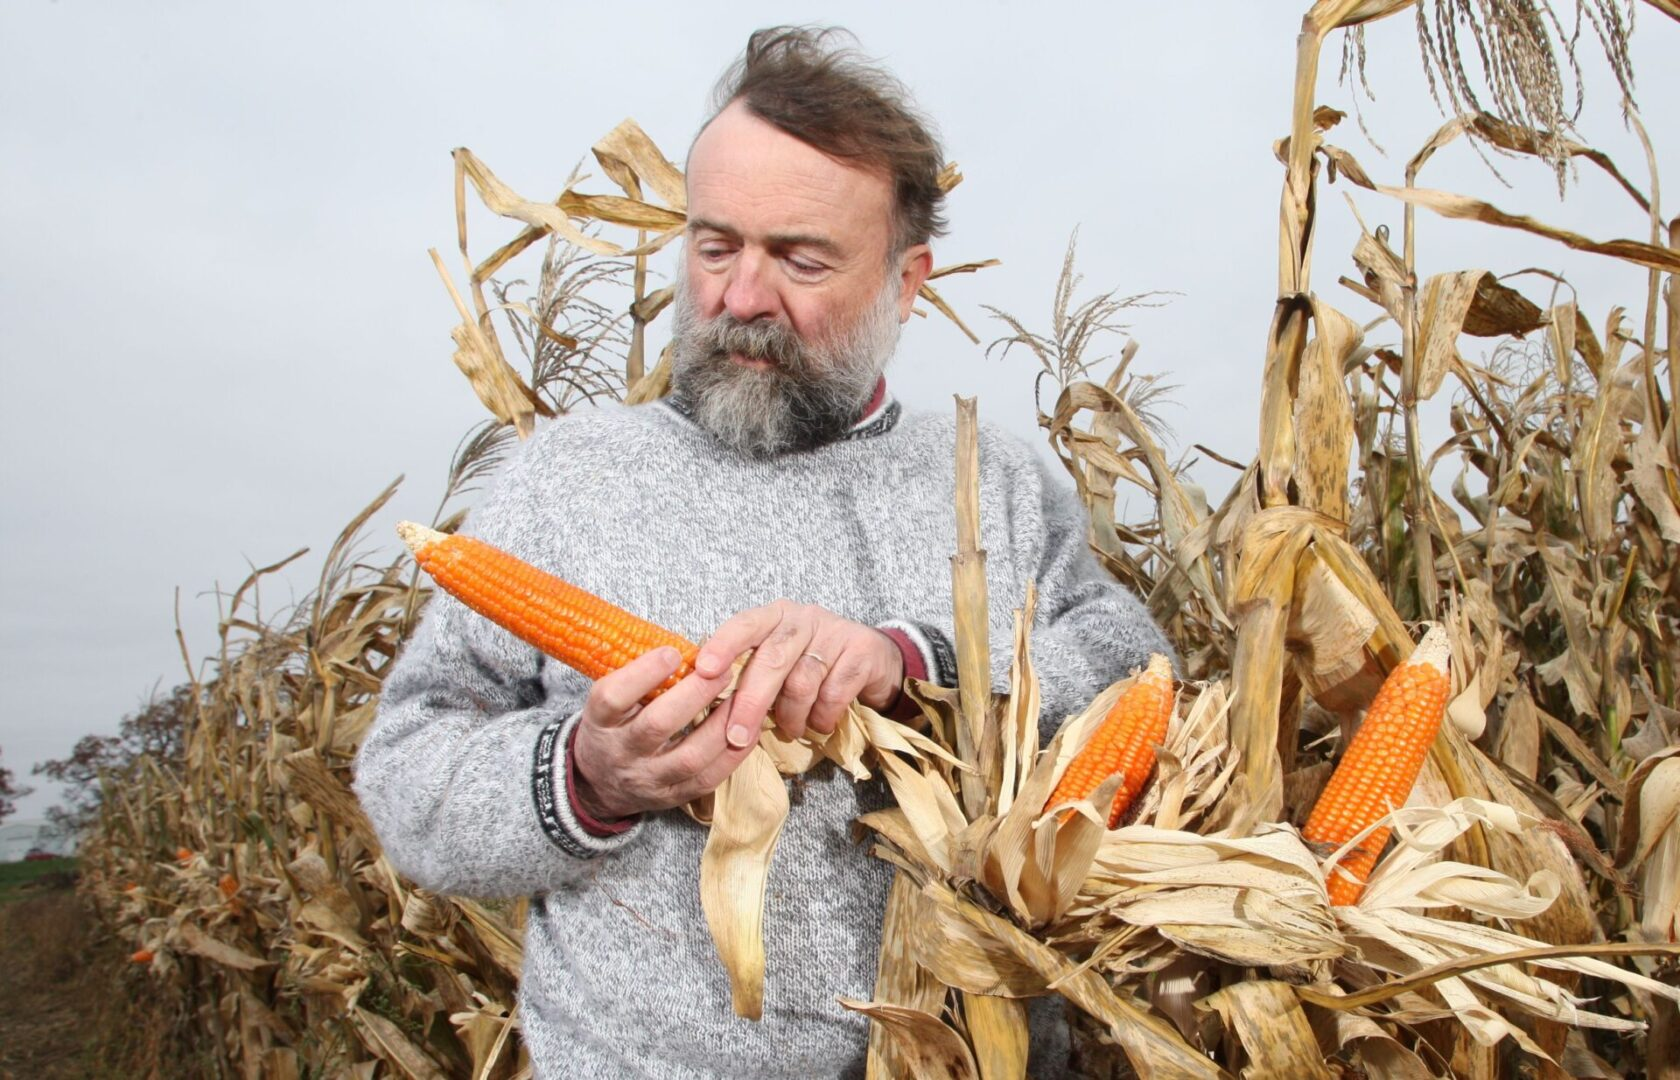 Torbert Rocheford, Orange corn – 11/3/14 – Purdue plant scientist in a field of orange corn at Agronomy Center for Research and Education (ACRE) for an Agriculture's Magazine story. 'The Power of Orange' was published May 18, 2015.